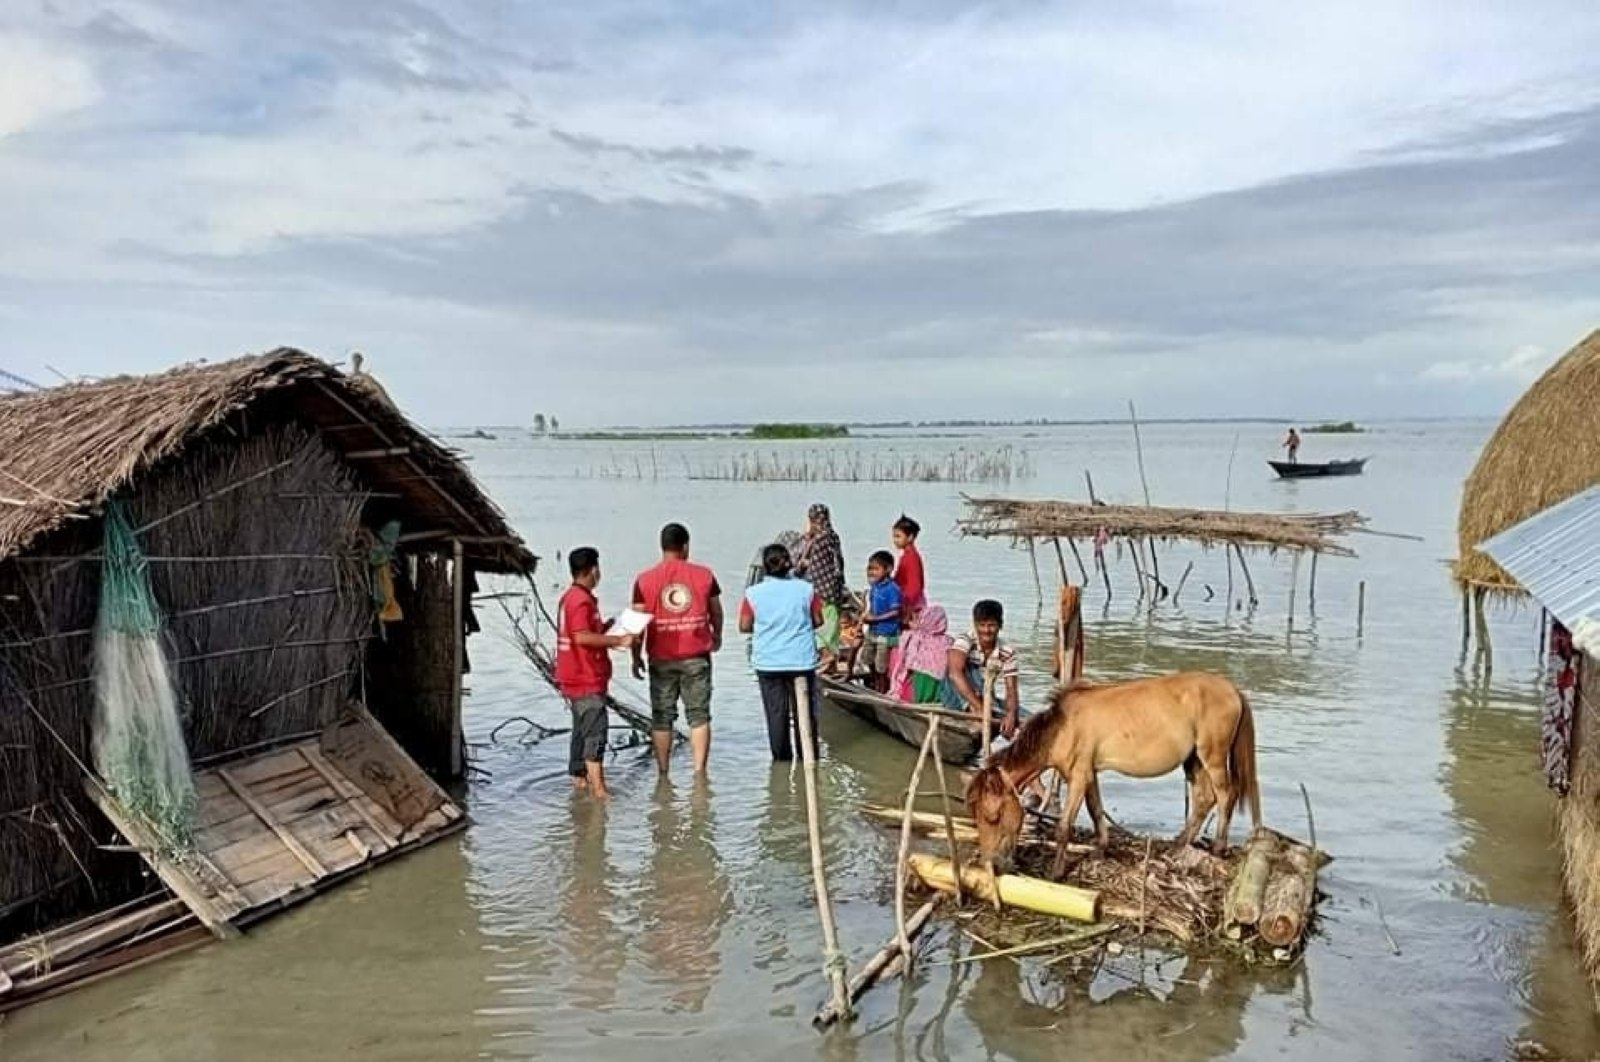 This photograph, provided by the International Federation of Red Cross and Red Crescent Societies (IFRC), shows IFRC volunteers reaching flood-affected communities with drinking water and other support in Kurigram, Bangladesh, July 16, 2020. (AP Photo)